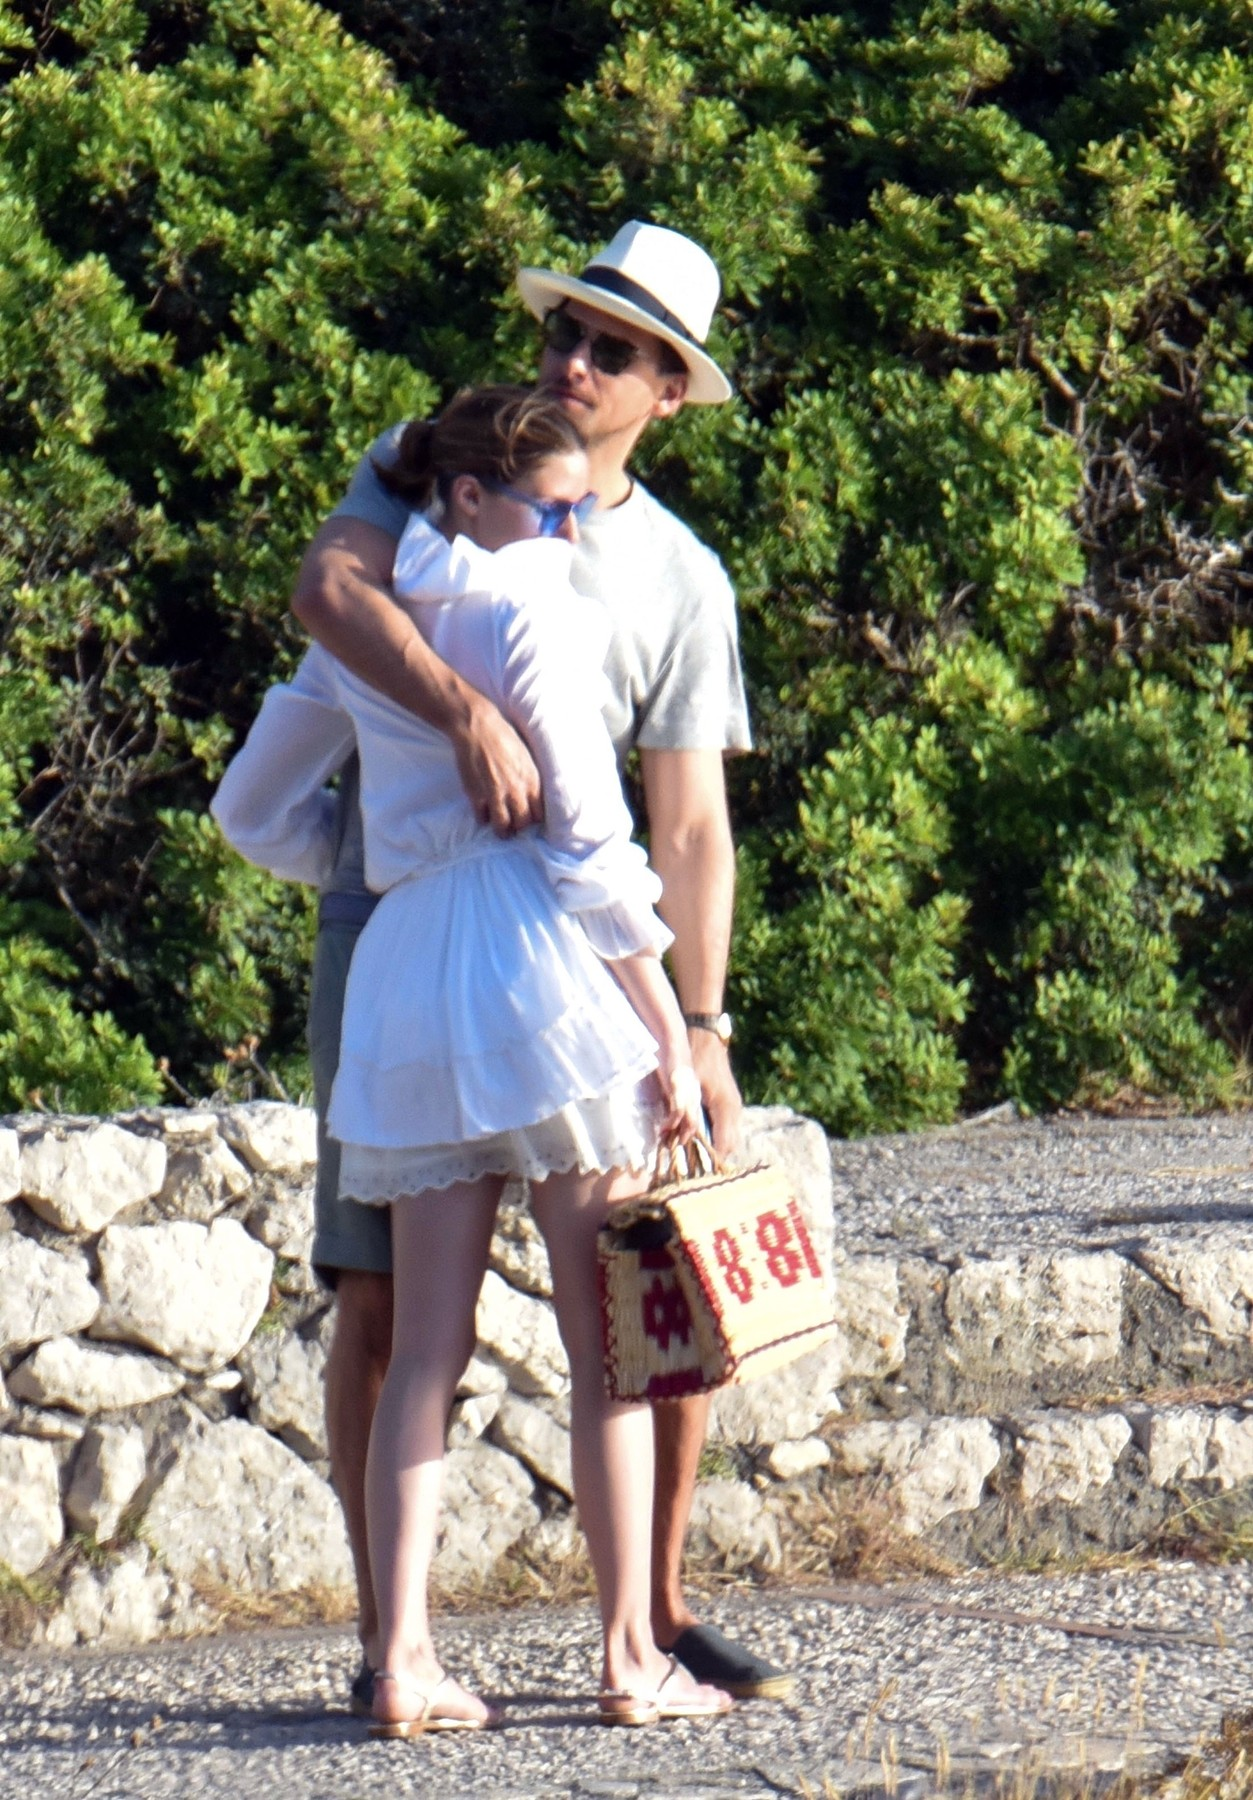 *EXCLUSIVE* ** RIGHTS: WORLDWIDE EXCEPT IN FRANCE, ITALY, SPAIN ** Italy, ITALY  - American socialite Olivia Palermo and husband Johannes Huebl pictured taking in some sightseeing while on Holiday In Capri - Olivia's Husband Johannes Huebl is pictured having a cheeky grab of Olivia derriere as they took a selfie and shared a kiss together.  Pictured: Olivia Palermo and Johannes Huebl  BACKGRID UK 10 JULY 2017   UK: +44 208 344 2007 / uksales@backgrid.com  USA: +1 310 798 9111 / usasales@backgrid.com  *UK Clients - Pictures Containing Children Please Pixelate Face Prior To Publication*, Image: 341498170, License: Rights-managed, Restrictions: , Model Release: no, Credit line: Profimedia, Xposurephotos